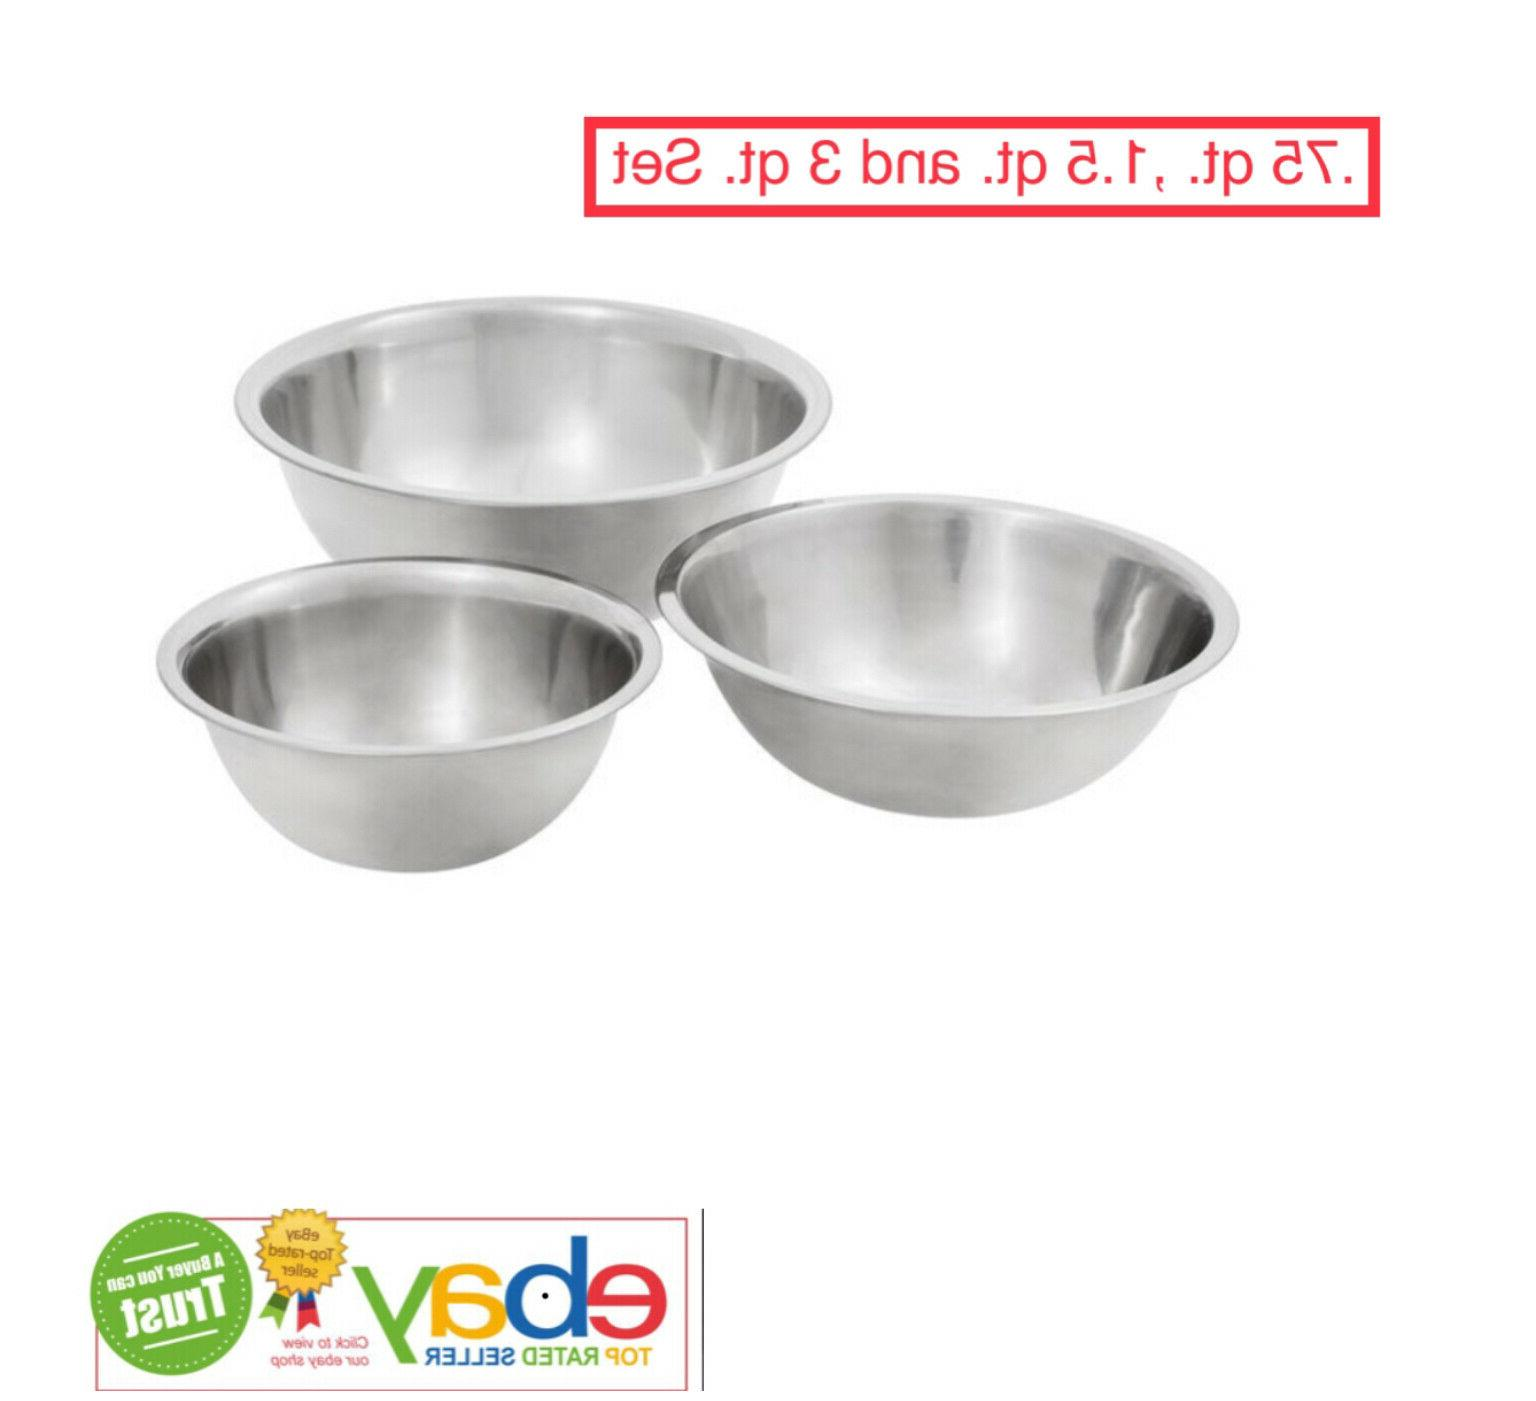 mixing bowls 3 piece set stainless steel